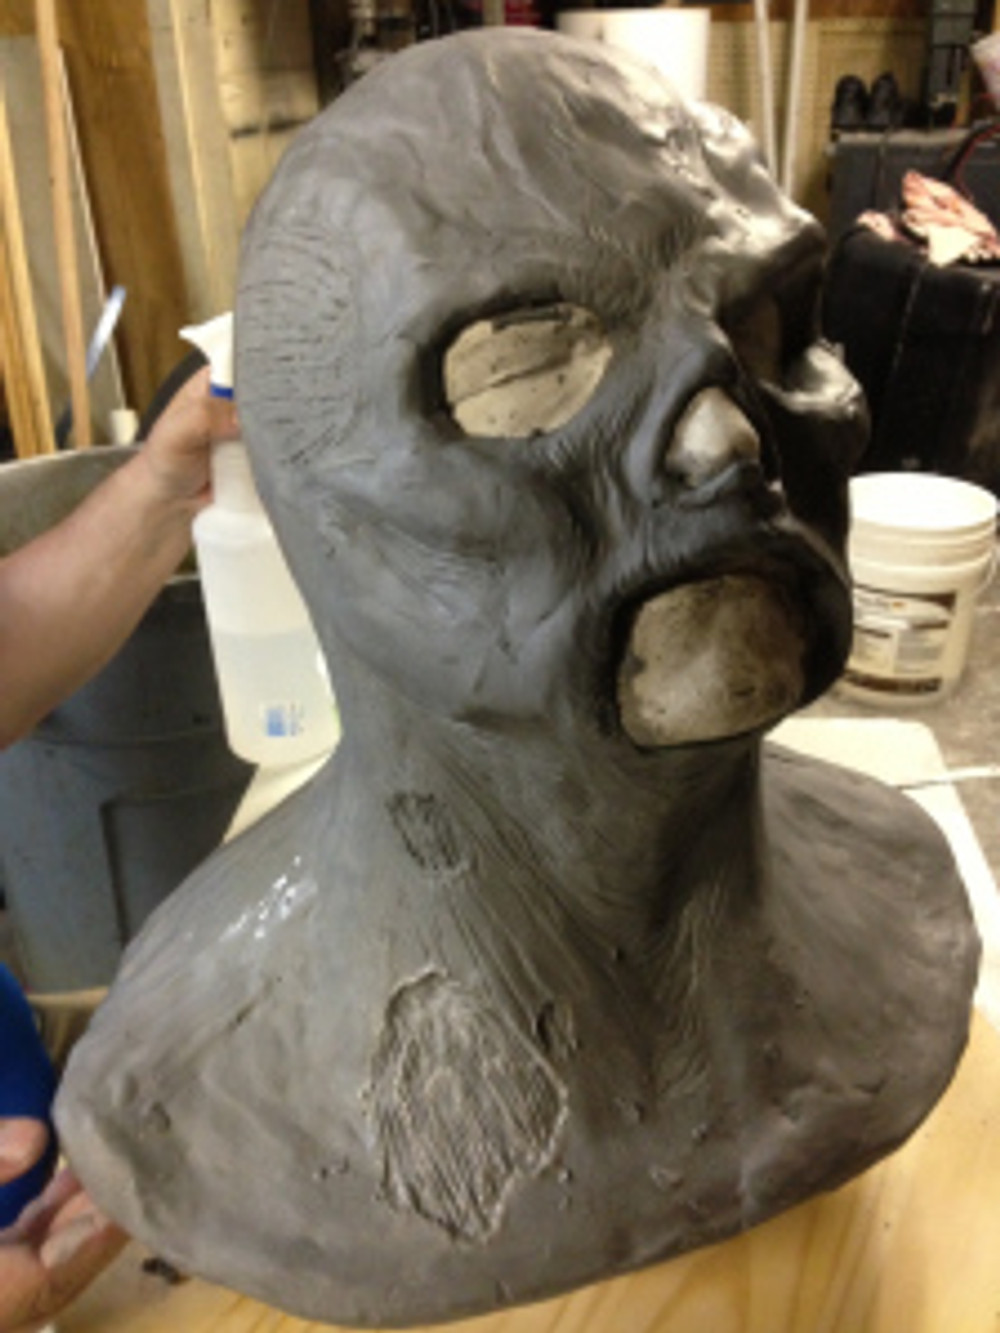 Austin and his crew sculpted a zombie mask over my plaster head.  They will then cast a latex mask from this sculpt.